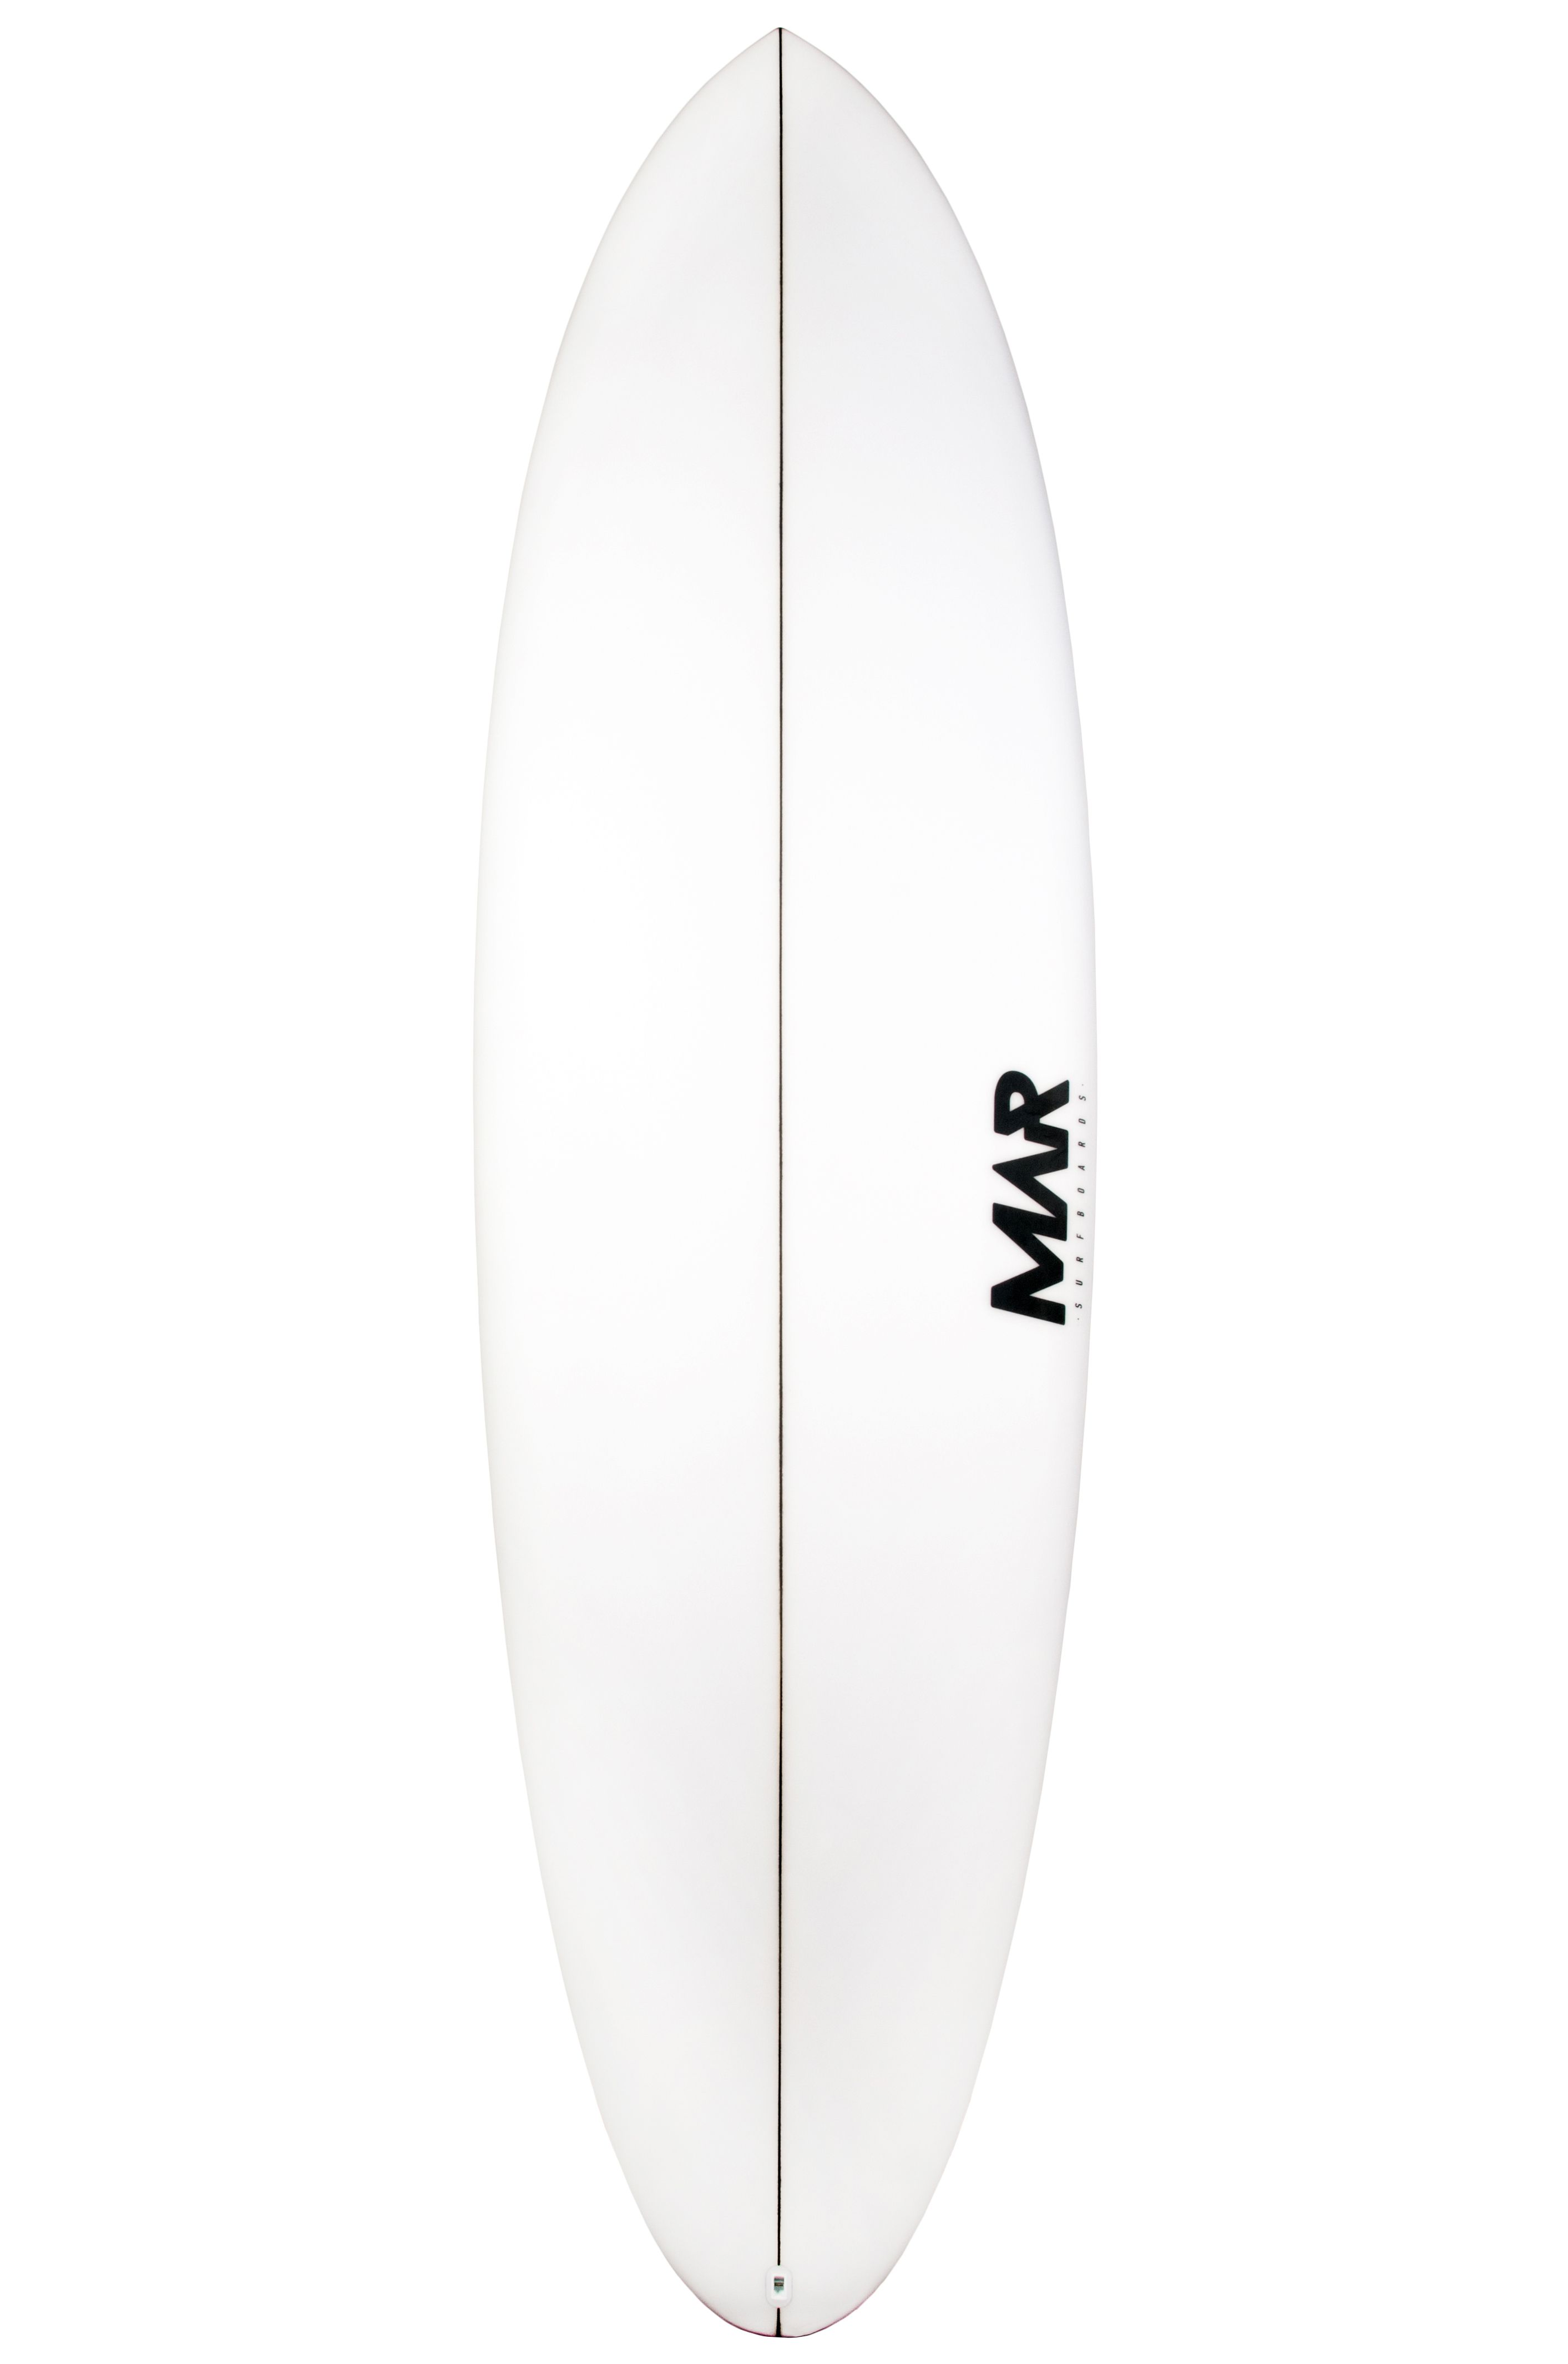 Mar Surf Board 7'2 MAR MID PU Round Pin Tail - White FCS II Multisystem 7ft2